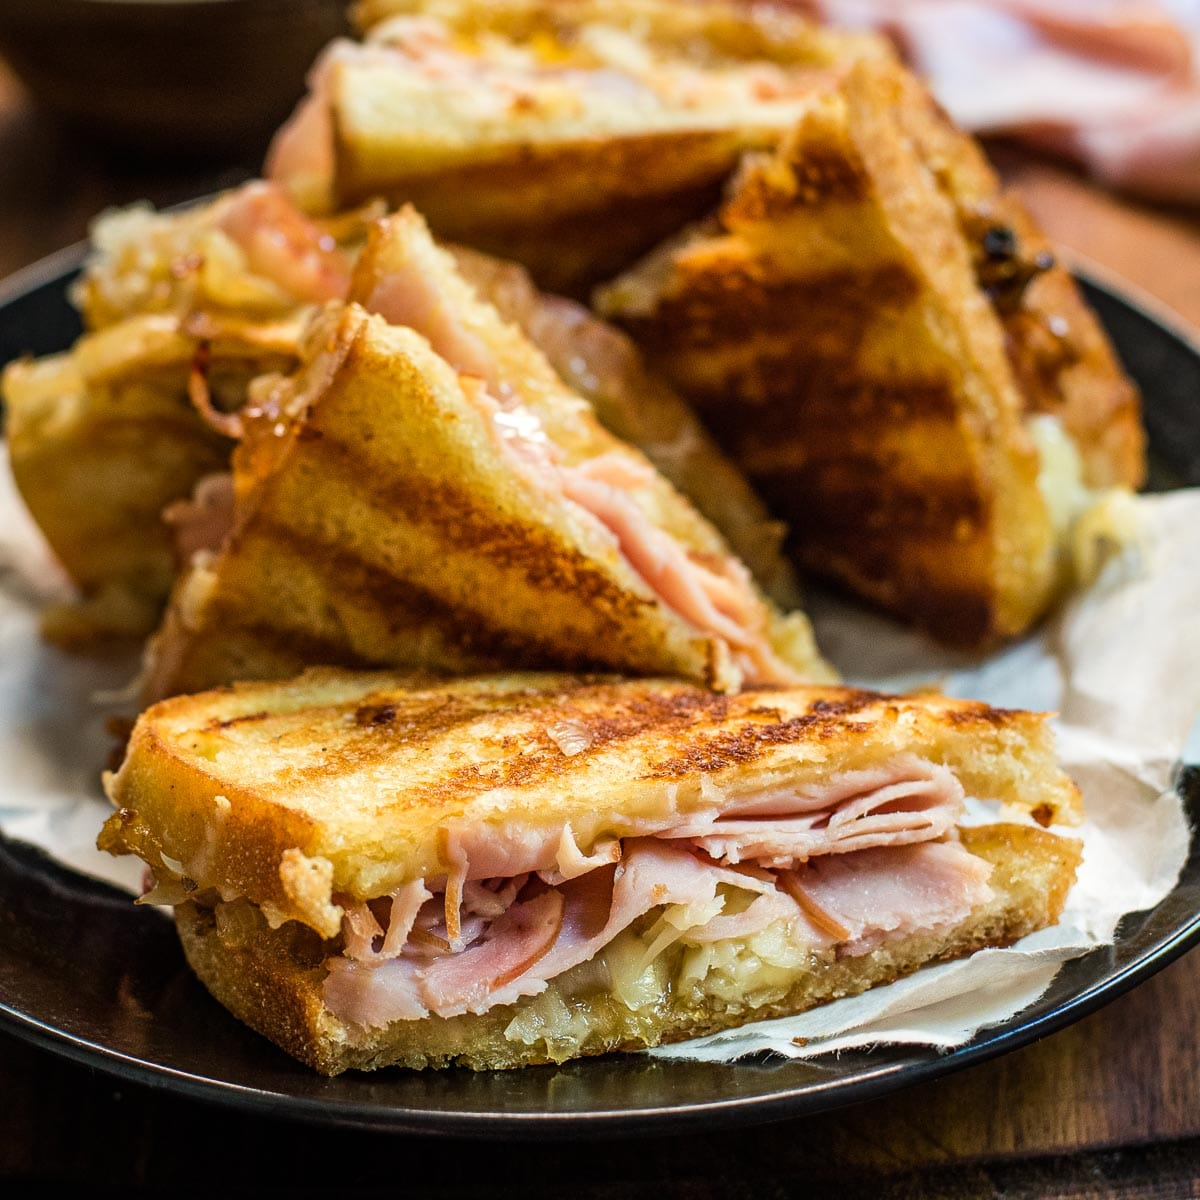 Gruyere grilled cheese sliced in half to reveal the melty cheese, ham slices, and caramelized onions.